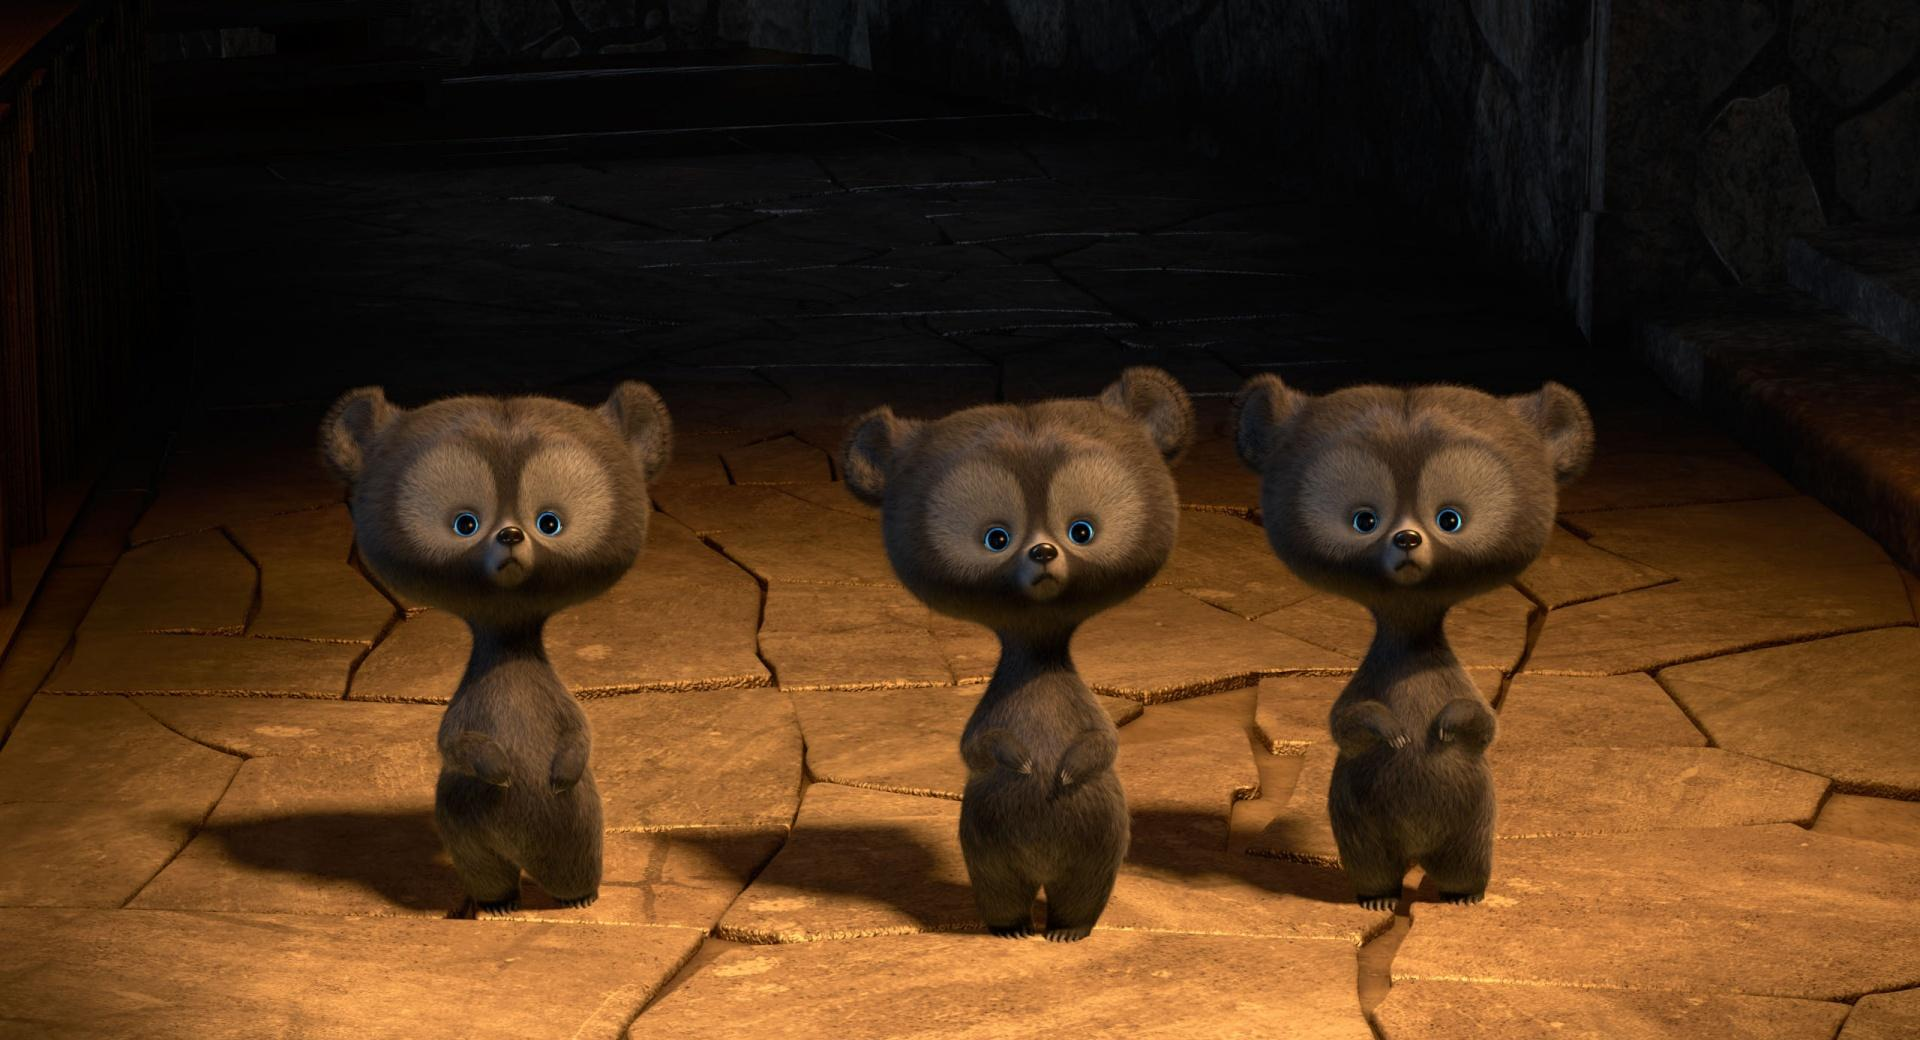 Brave Triplet Bear Cubs wallpapers HD quality